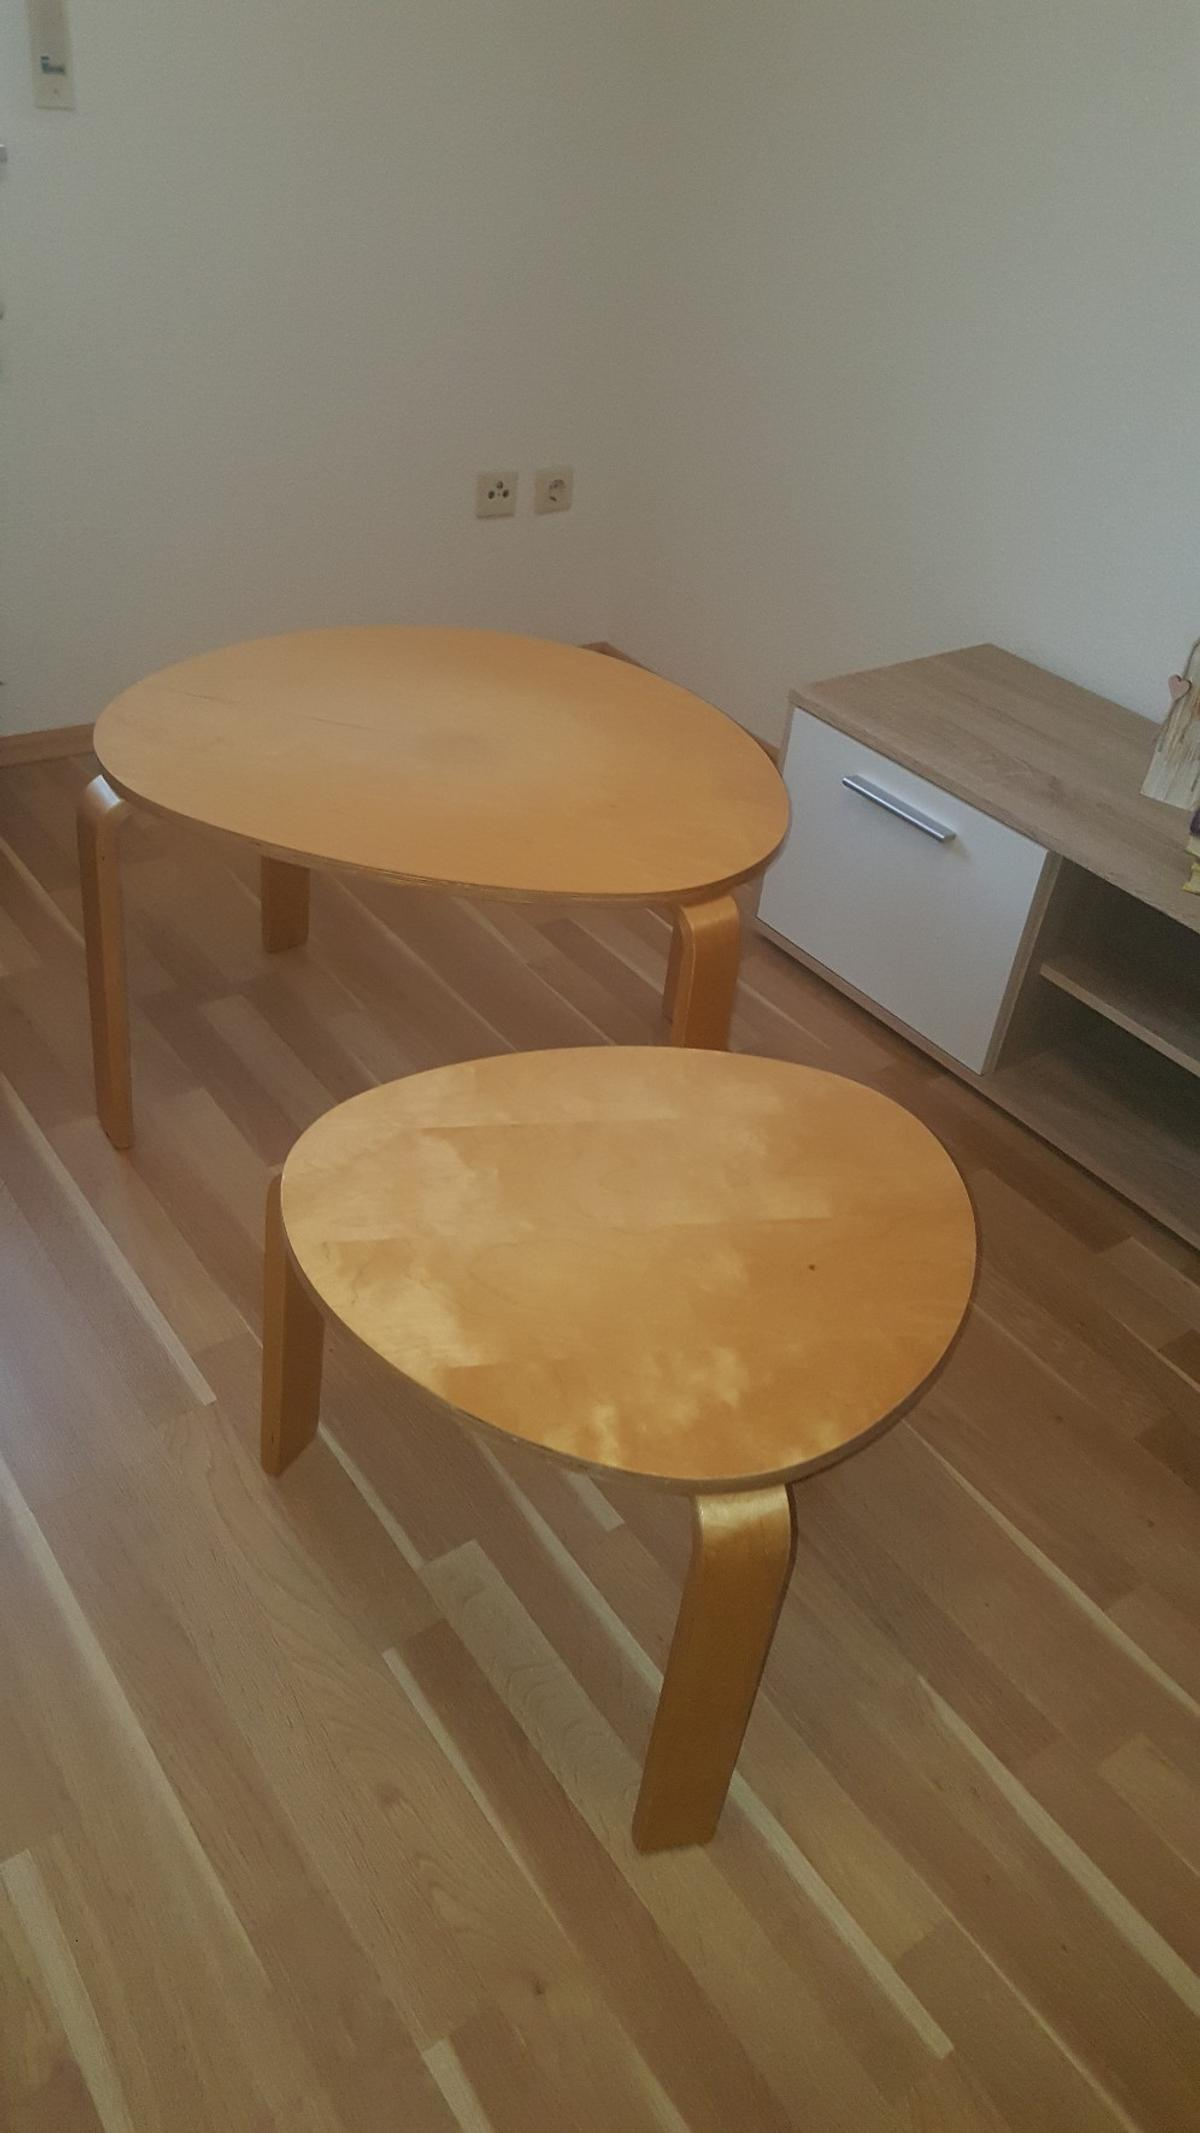 Ikea Couchtisch 2er Set Buche In 07819 Triptis For 15 00 For Sale Shpock